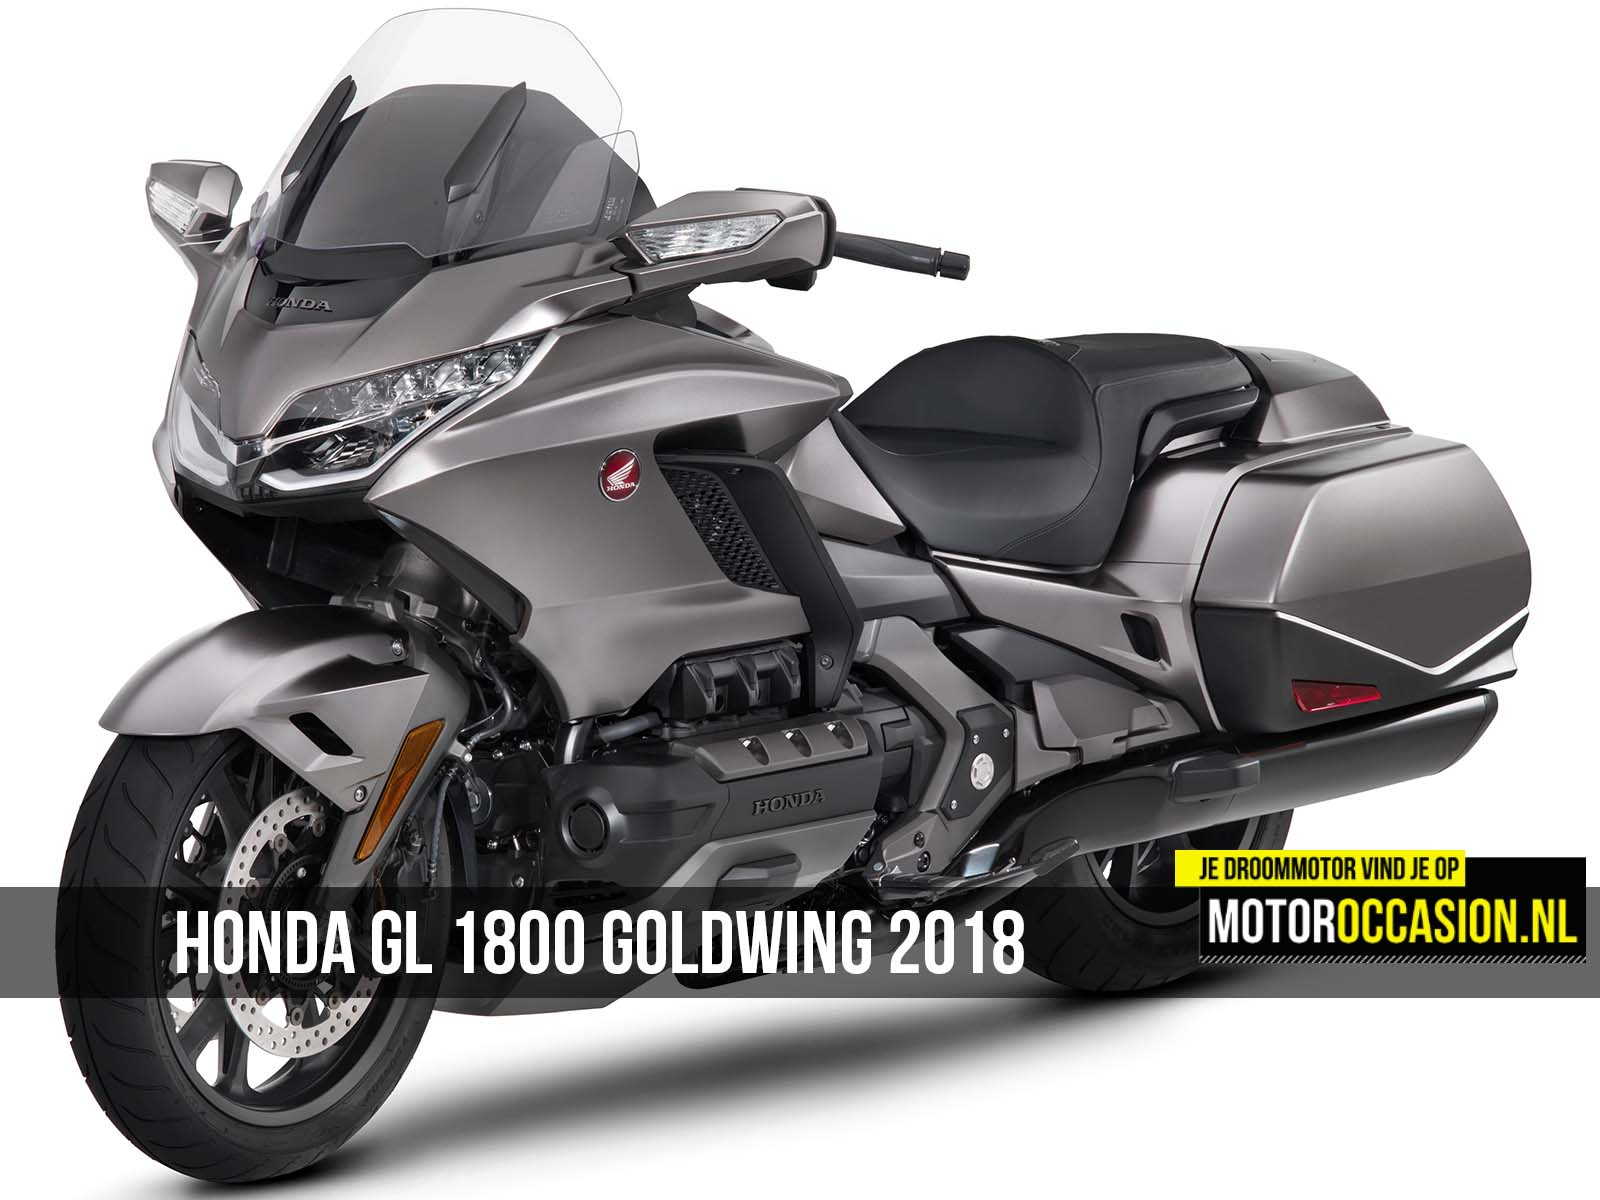 honda gl 1800 goldwing 2018 is atletischer geworden 25 10 2017. Black Bedroom Furniture Sets. Home Design Ideas